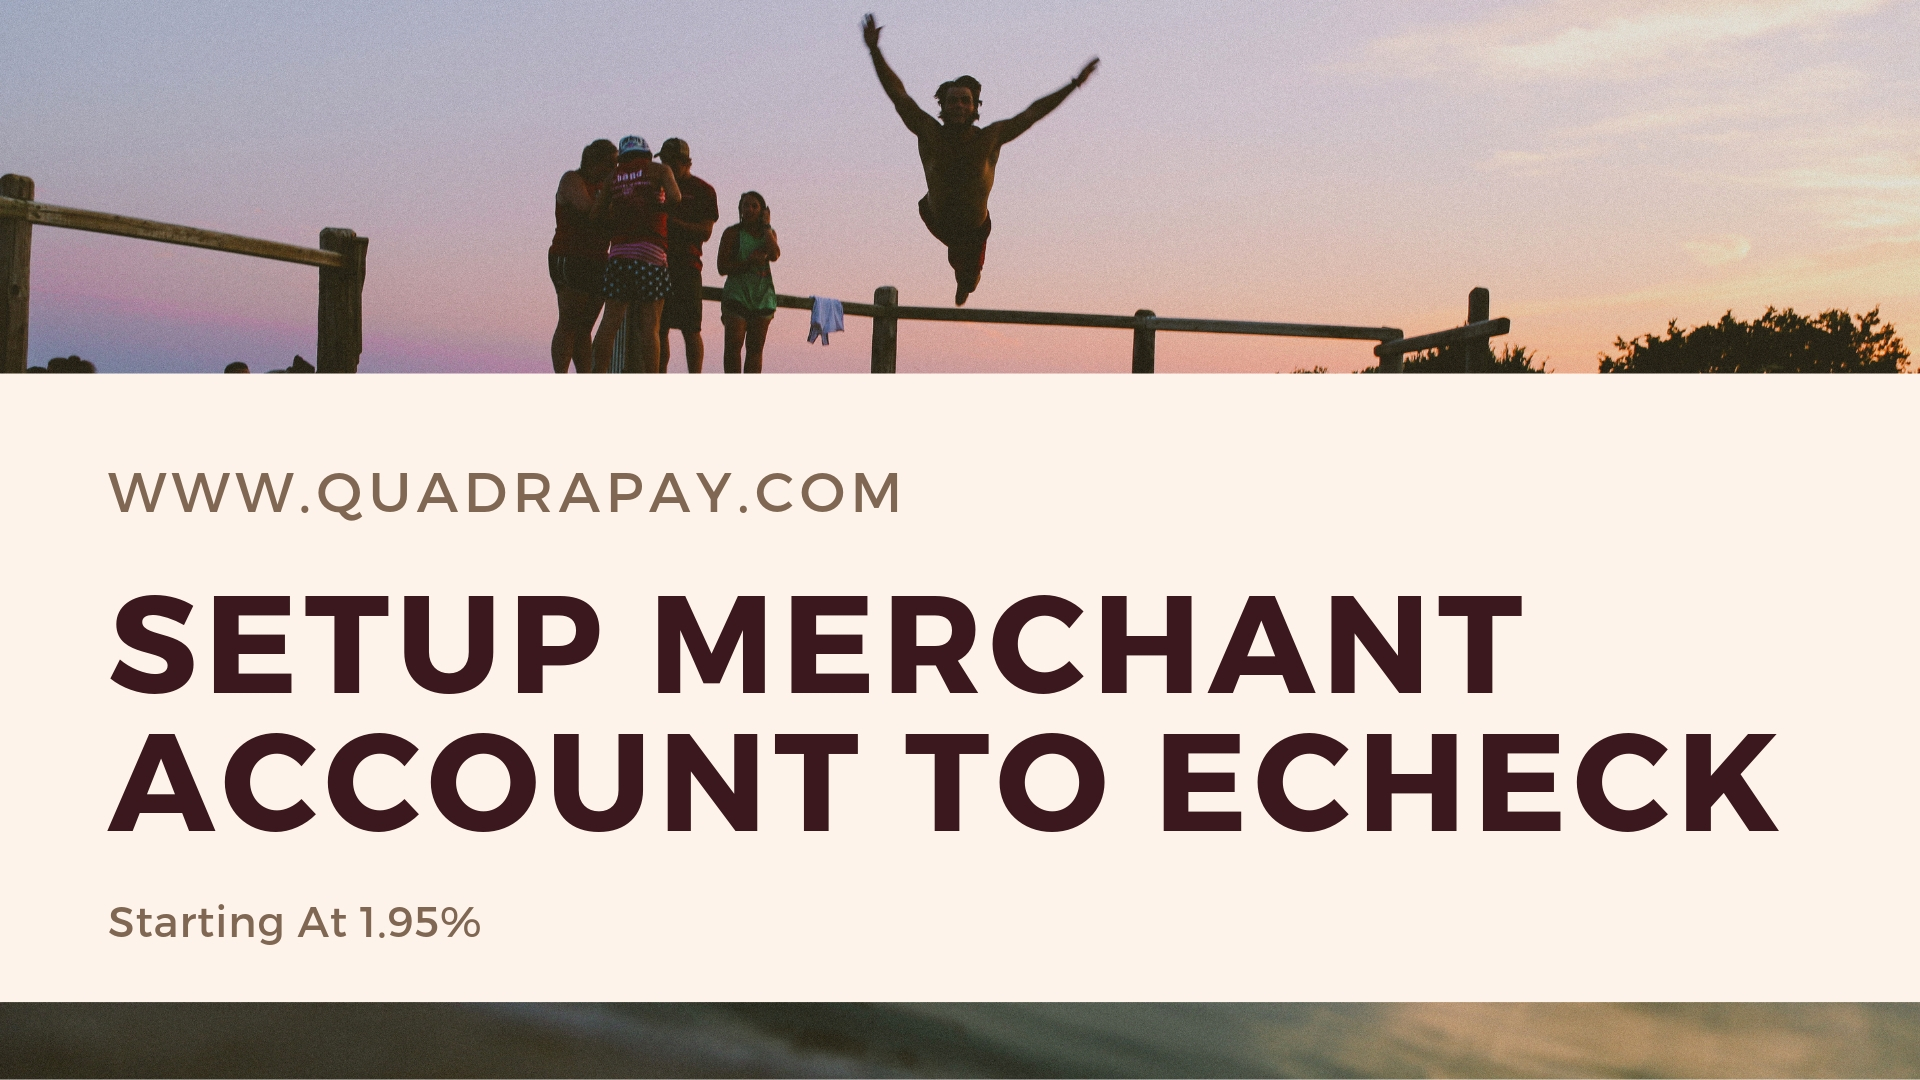 Setup Merchant Account To Echeck